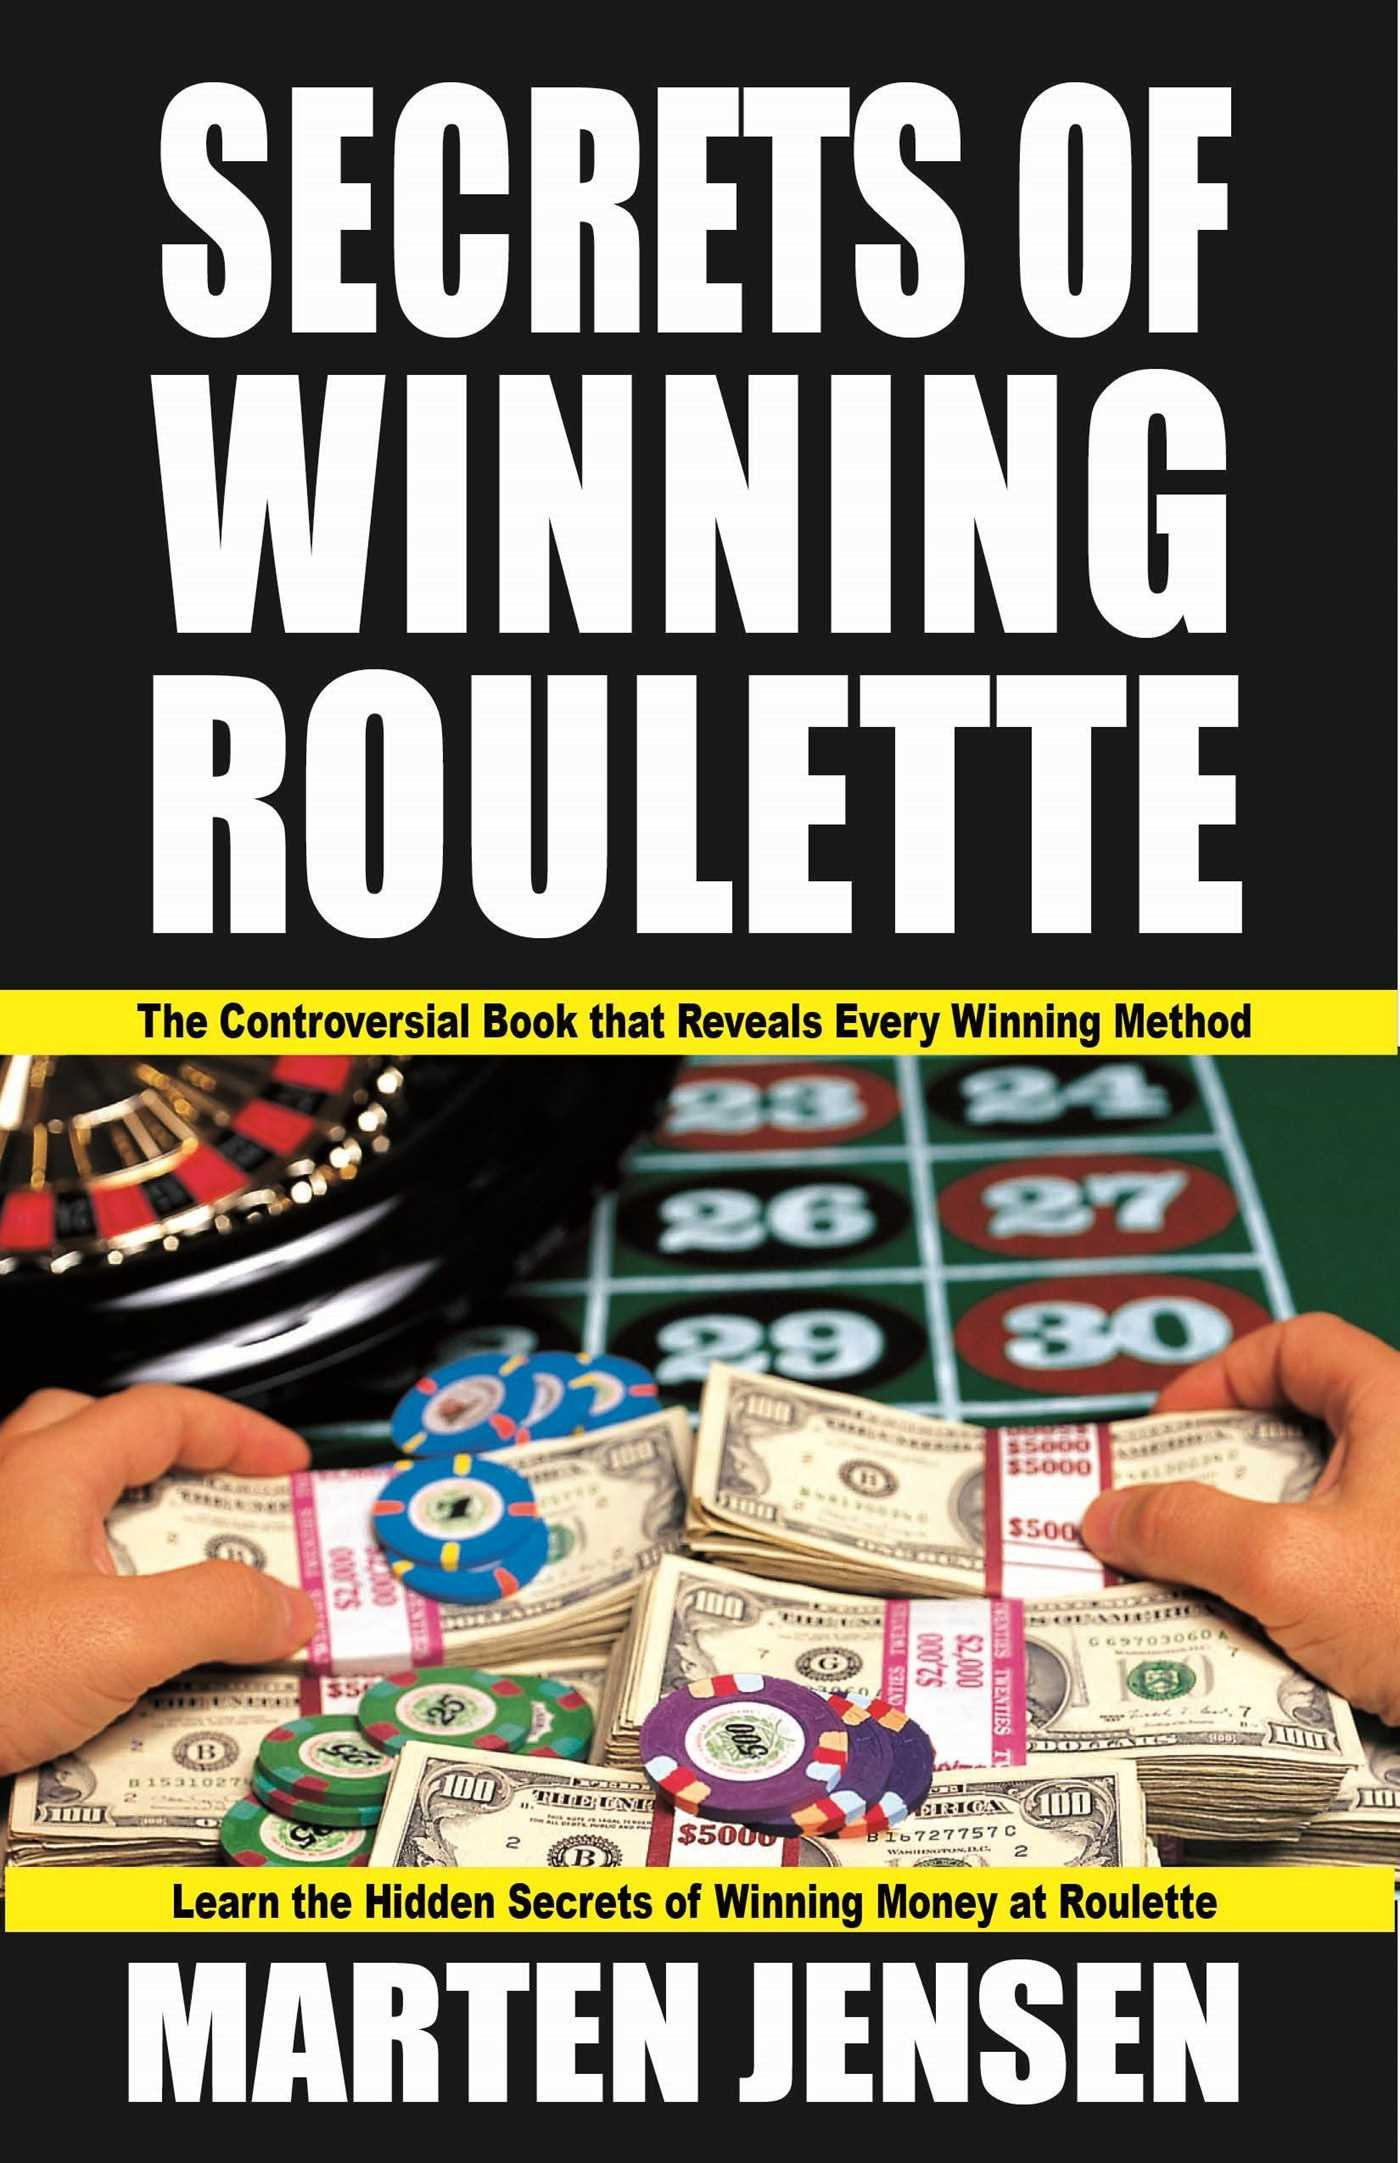 How to win in the winter roulette 2 card poker hand names